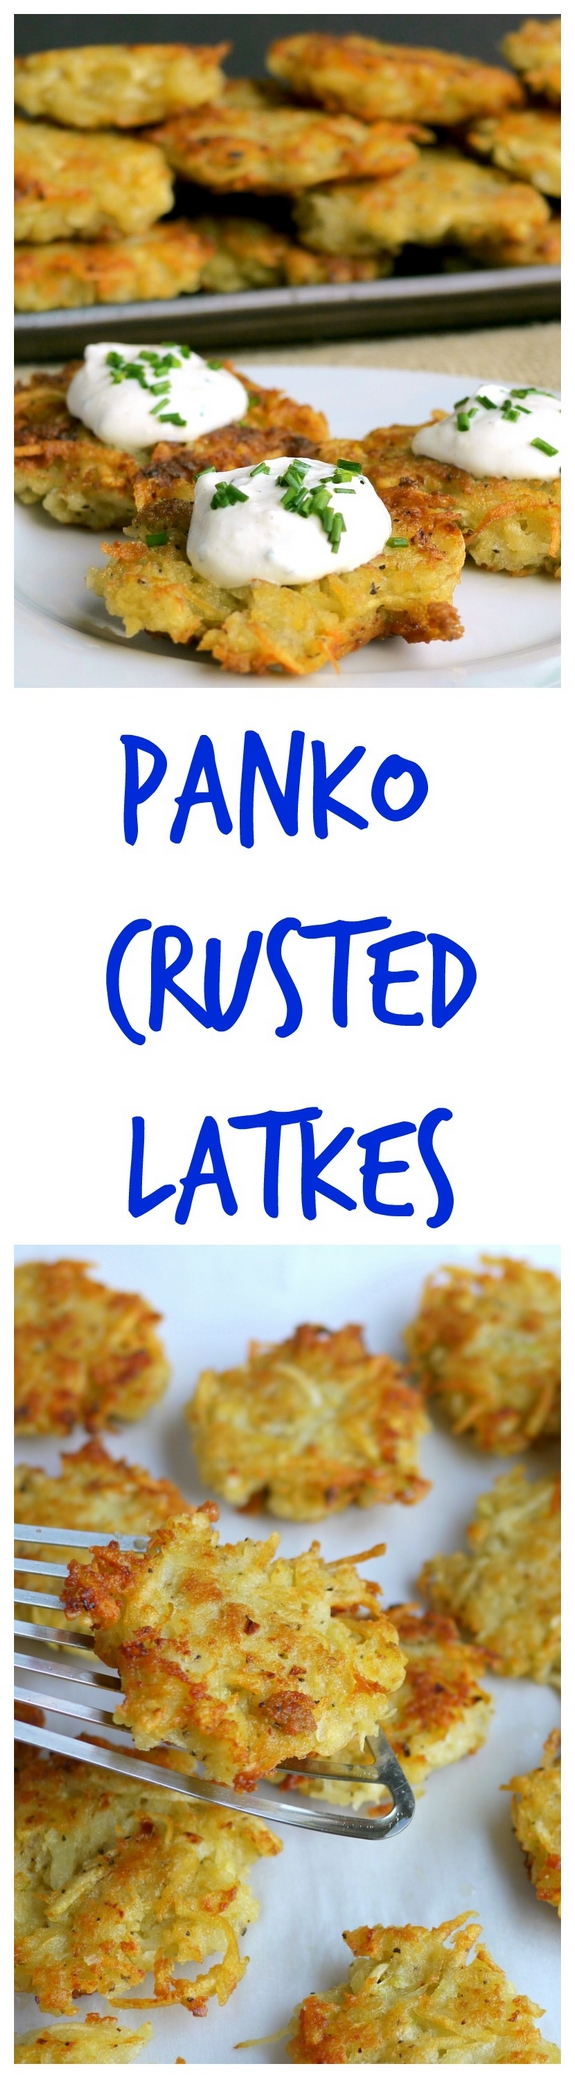 Panko Crusted Latkes your holiday celebration will be perfection with this crispy version